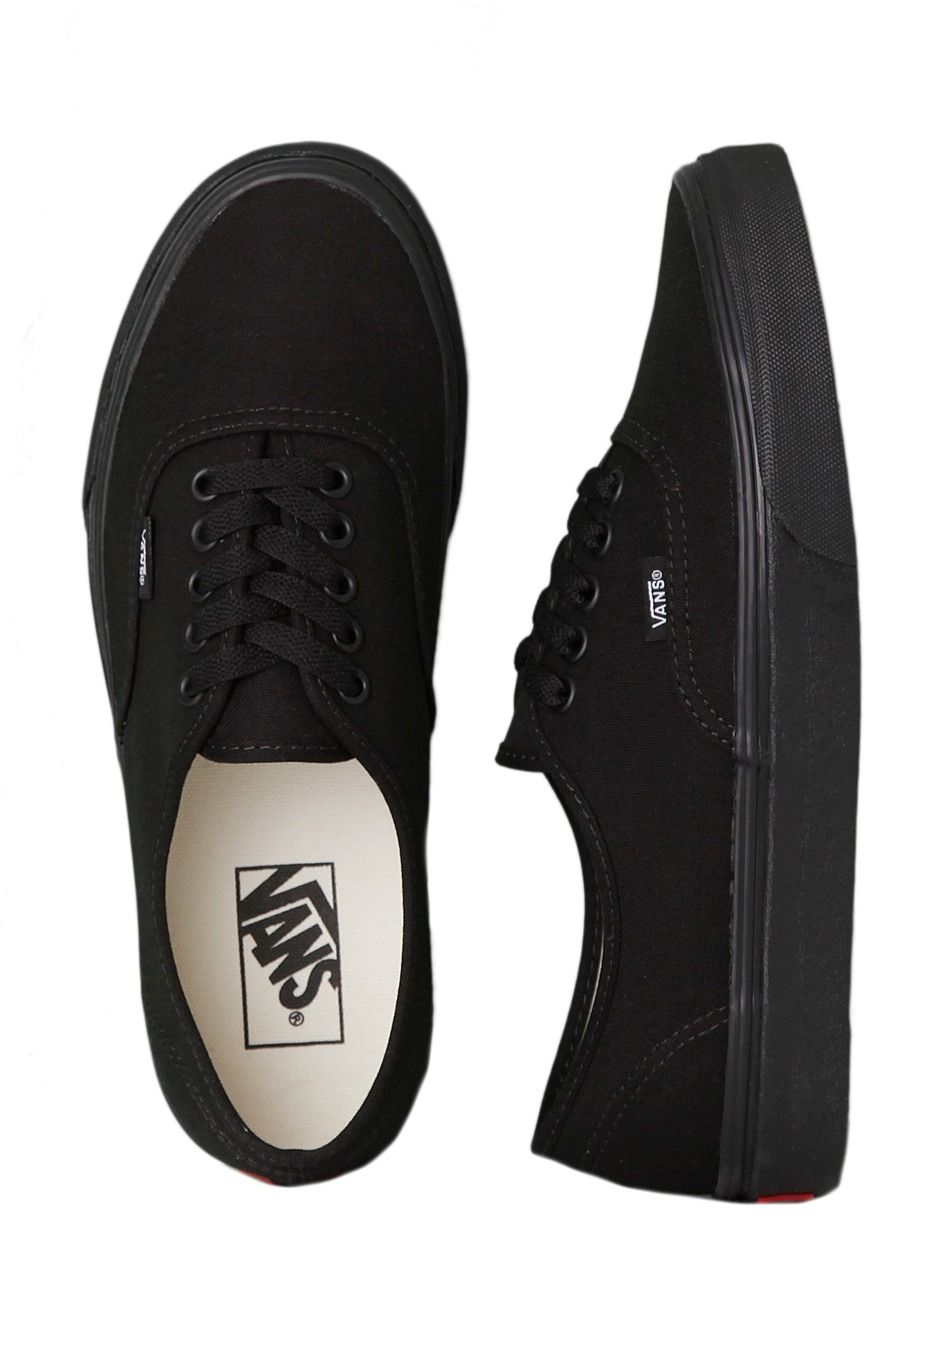 Can i buy vans for cheap mens vans slip on shoes vans on the wall - Order Vans Authentic Black Black Girl Shoes By Vans For At The Impericon Uk Online Shop For An Affordable Price